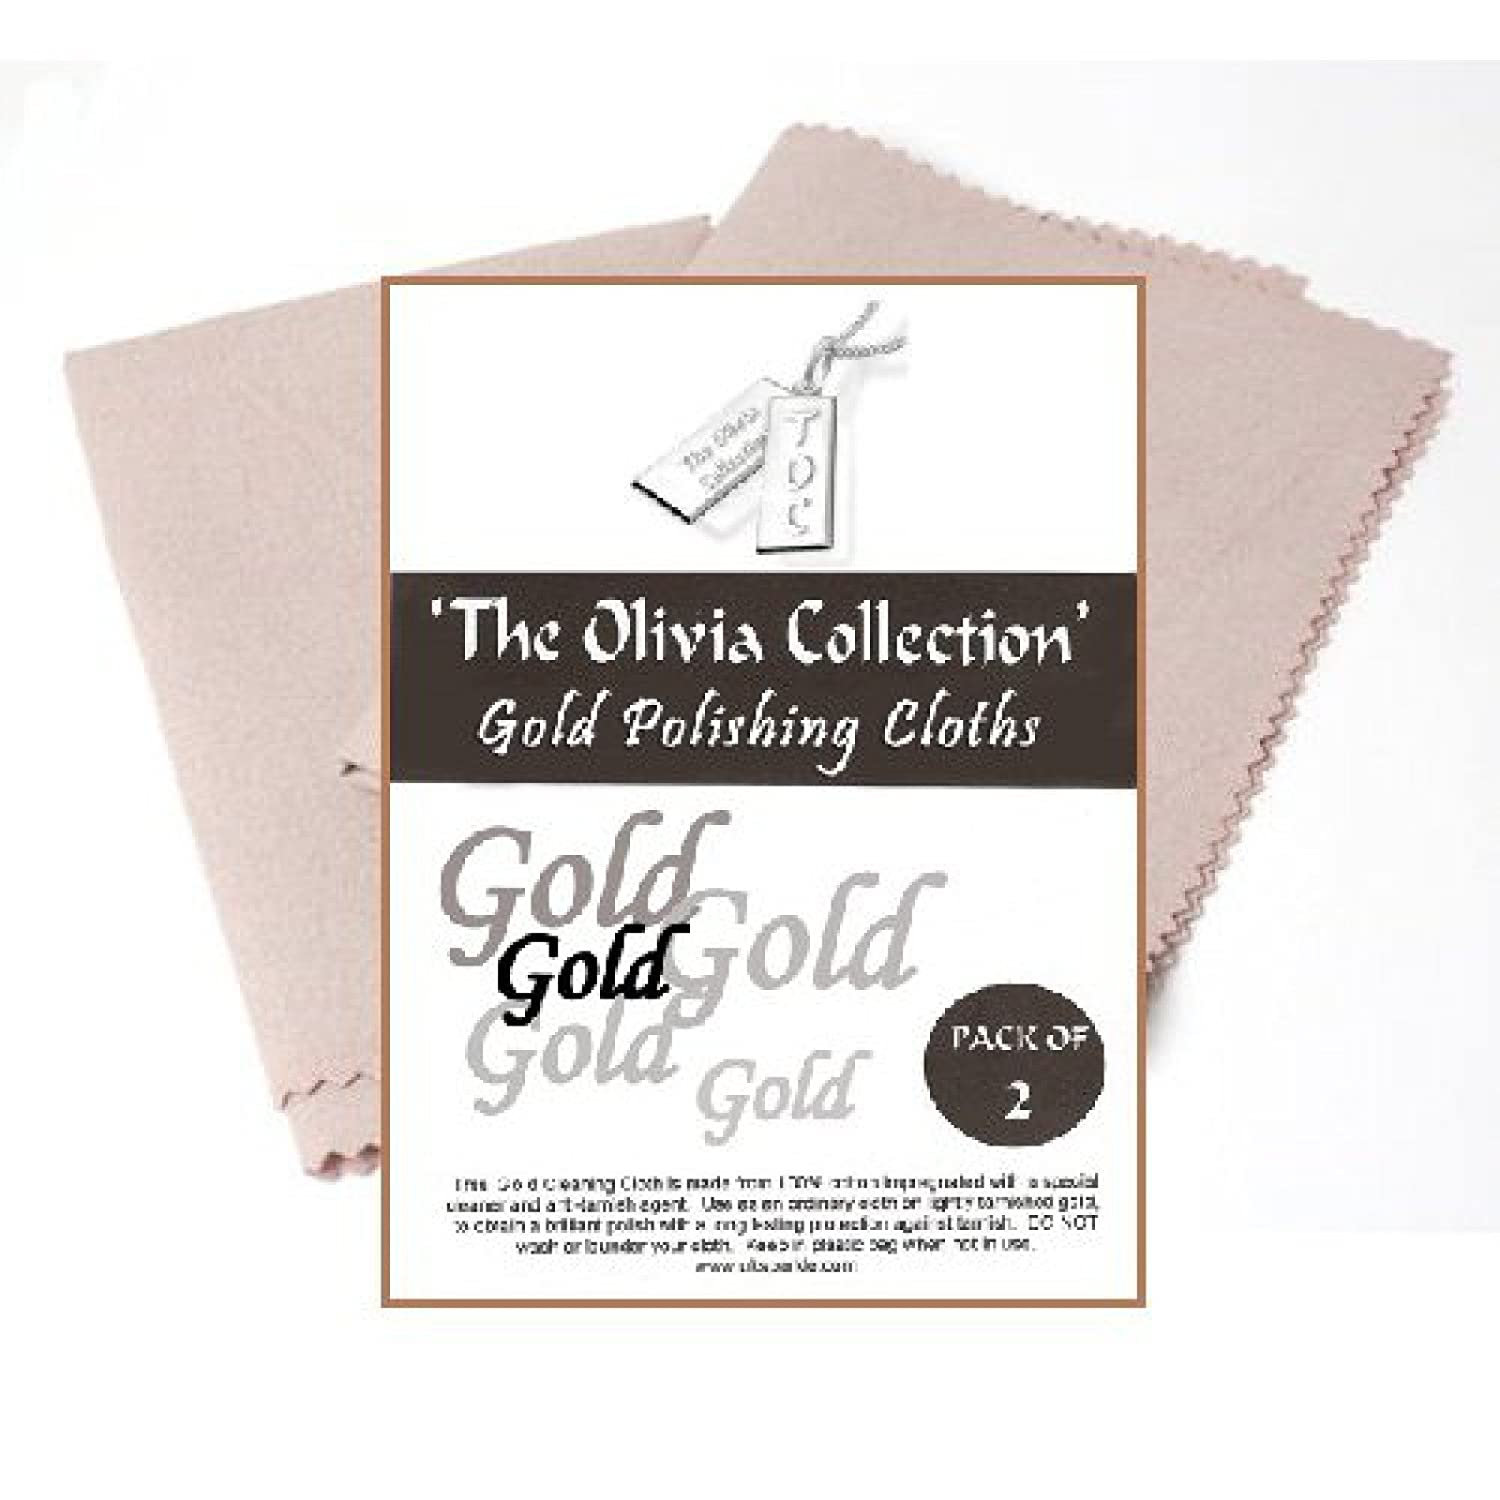 TOC Gold Jewellery Anti Tarnish Cleaning & Polishing Cloth X 2, 220mm x 315mm The Olivia Collection Direct Diamond Centre SC24